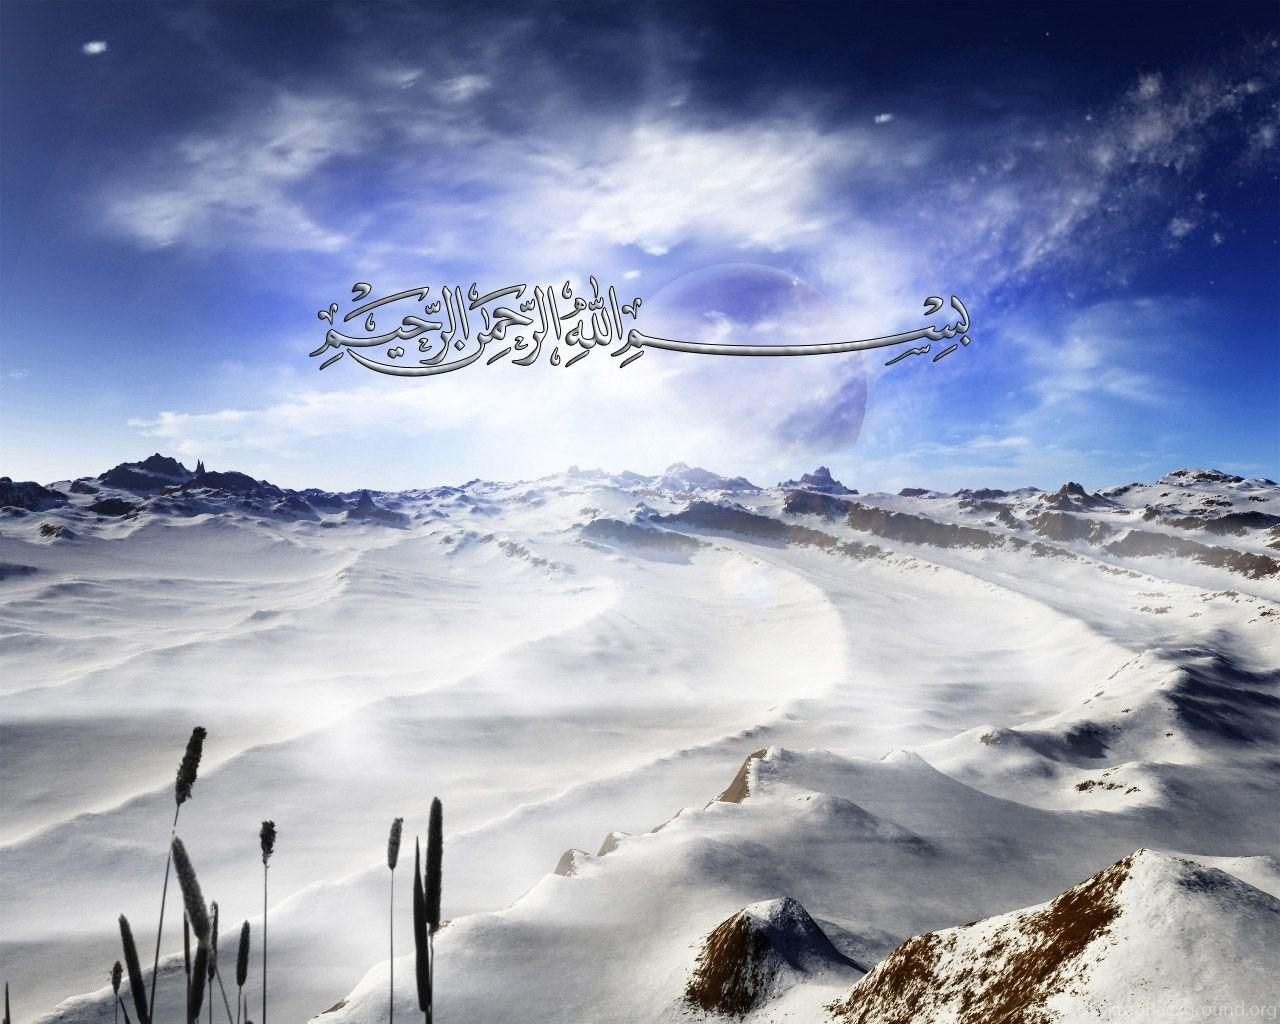 New Ipad Mini 1024 1024 Hd Wallpapers 100 Images Updated: New Beautiful Bismillah Wallpapers.jpg Desktop Background